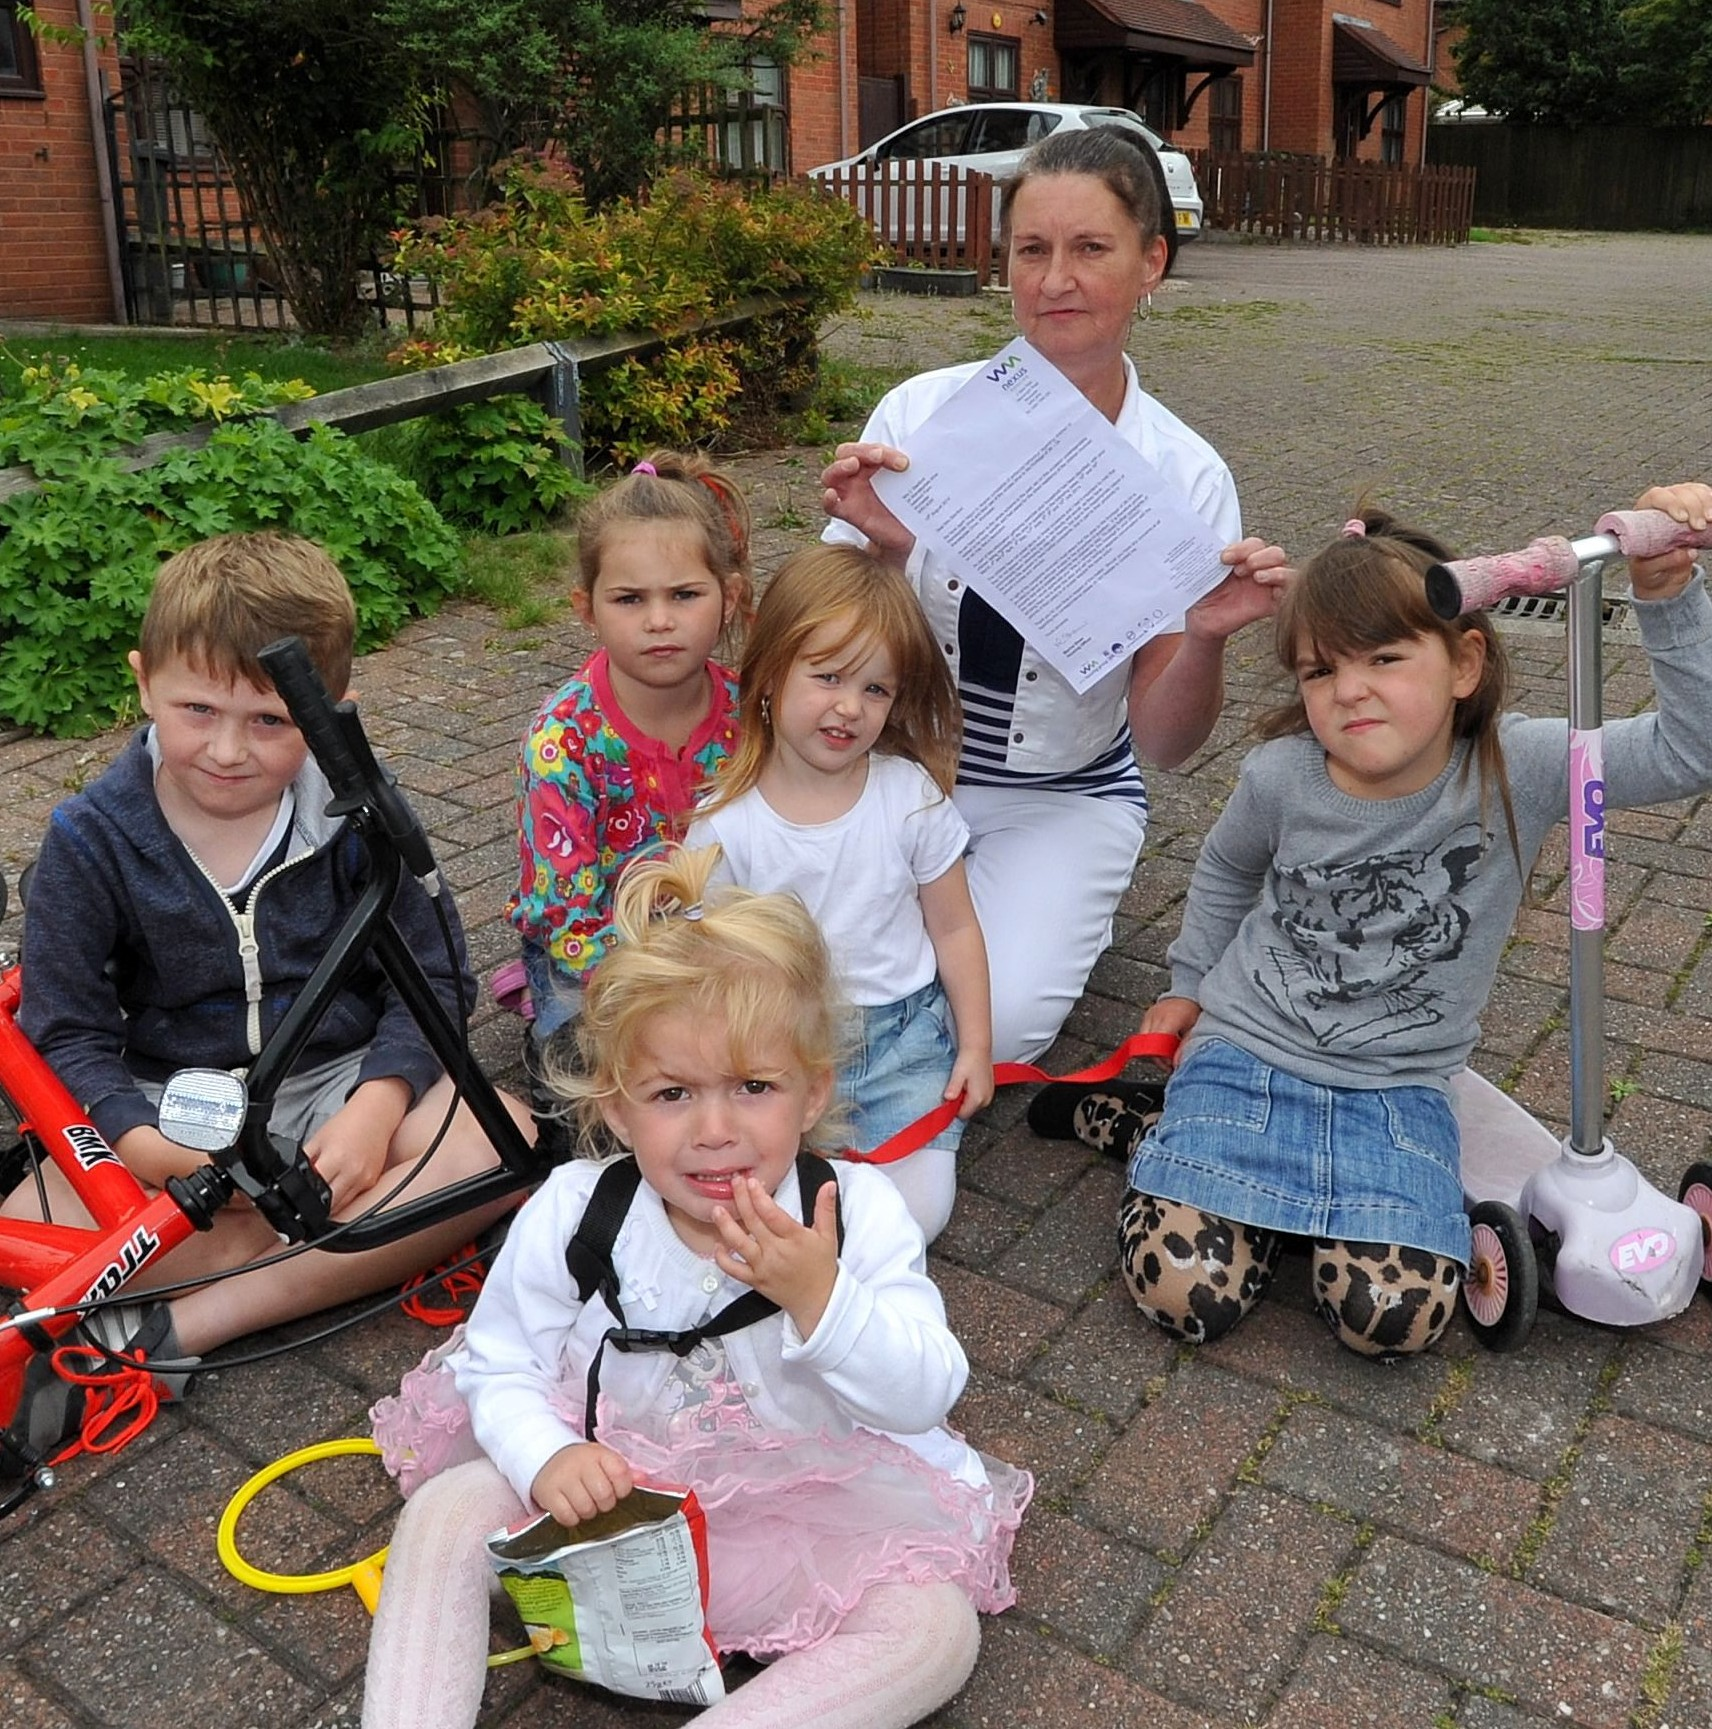 Carol Stanford from Wensleydale Drive, Blackpole, Worcester, with some of the children who play on the parking area next to her house